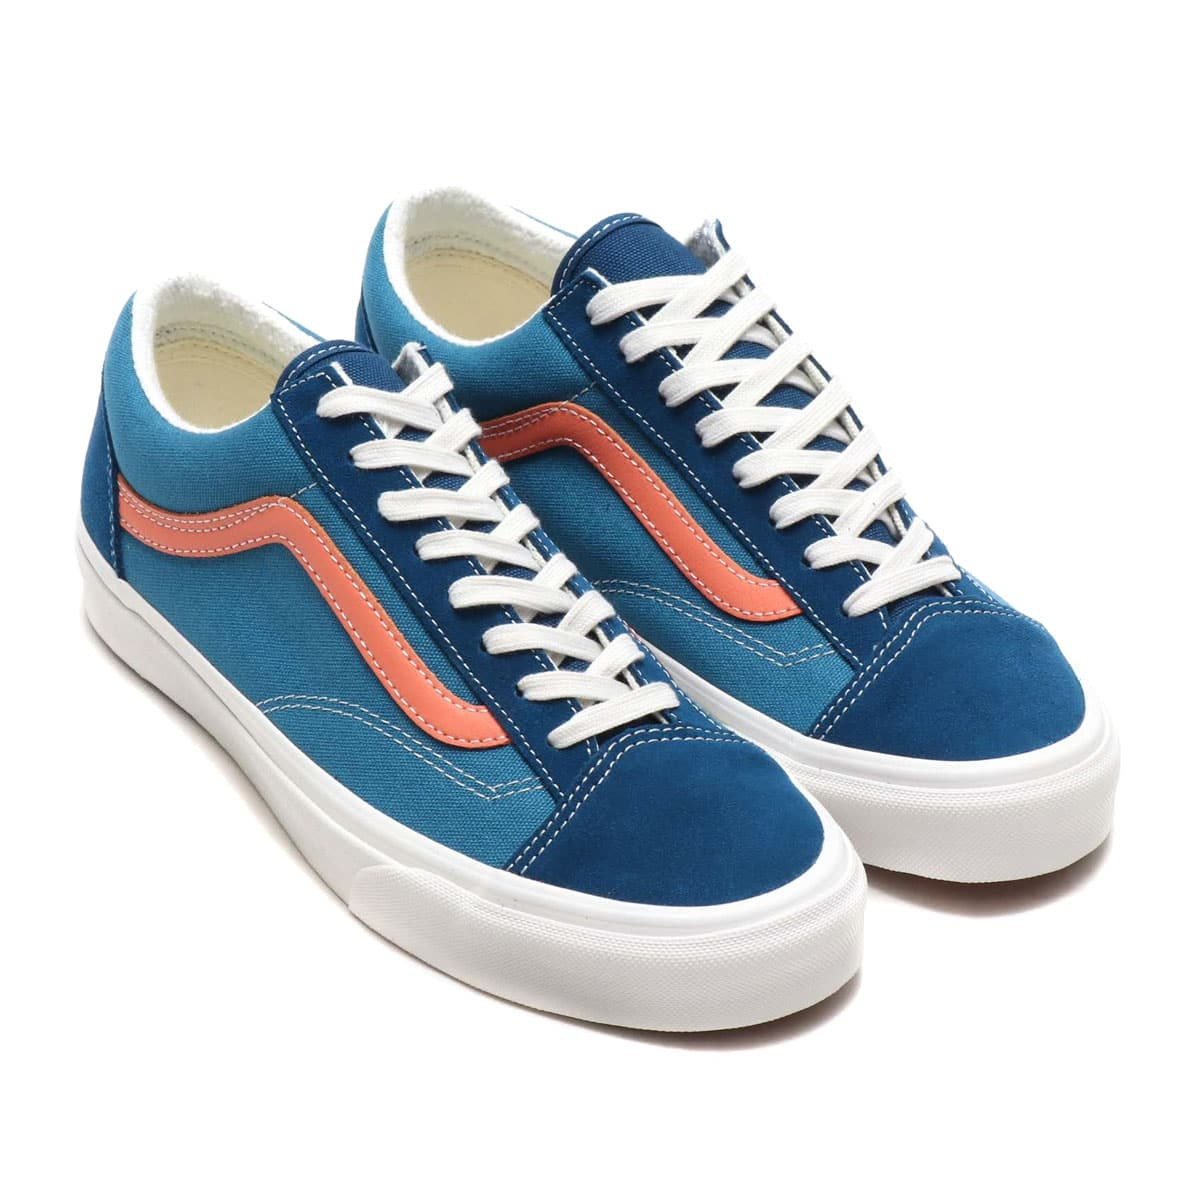 VANS STYLE 36 SAILOR BLUE 19SP-I_photo_large